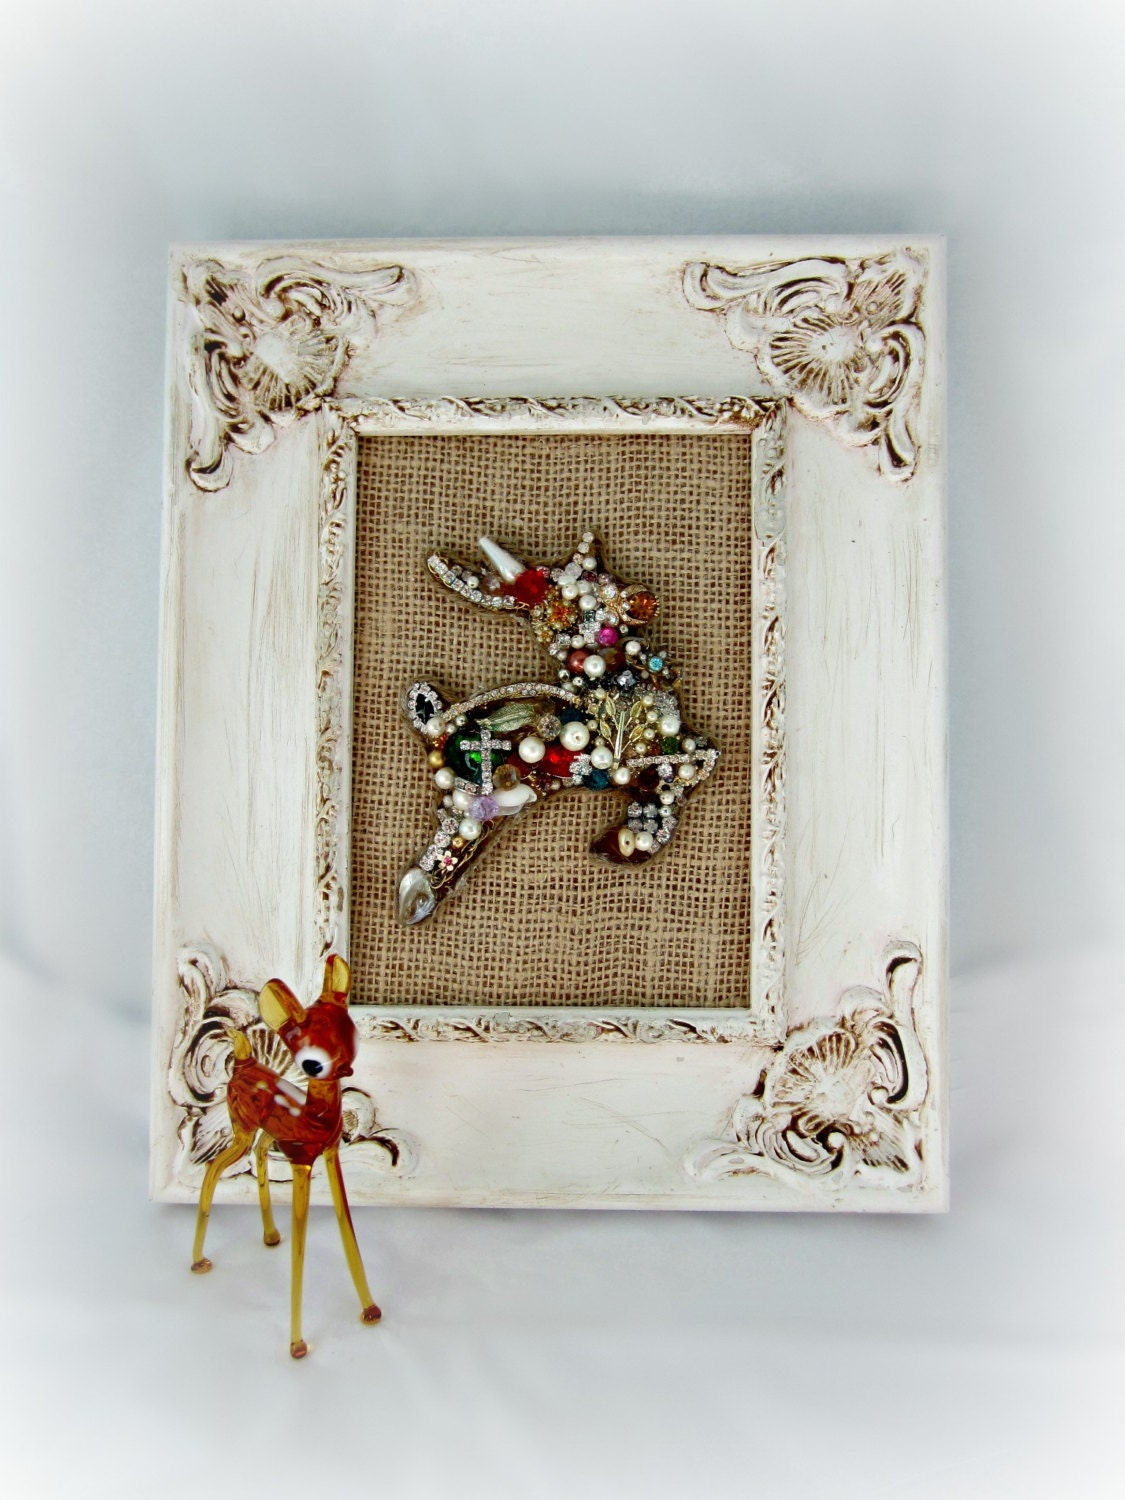 Bejeweled Christmas Reindeer Wall Art, Jewelry Mosaic Wall Decor, Shabby Holiday Decor - northandsouthshabby